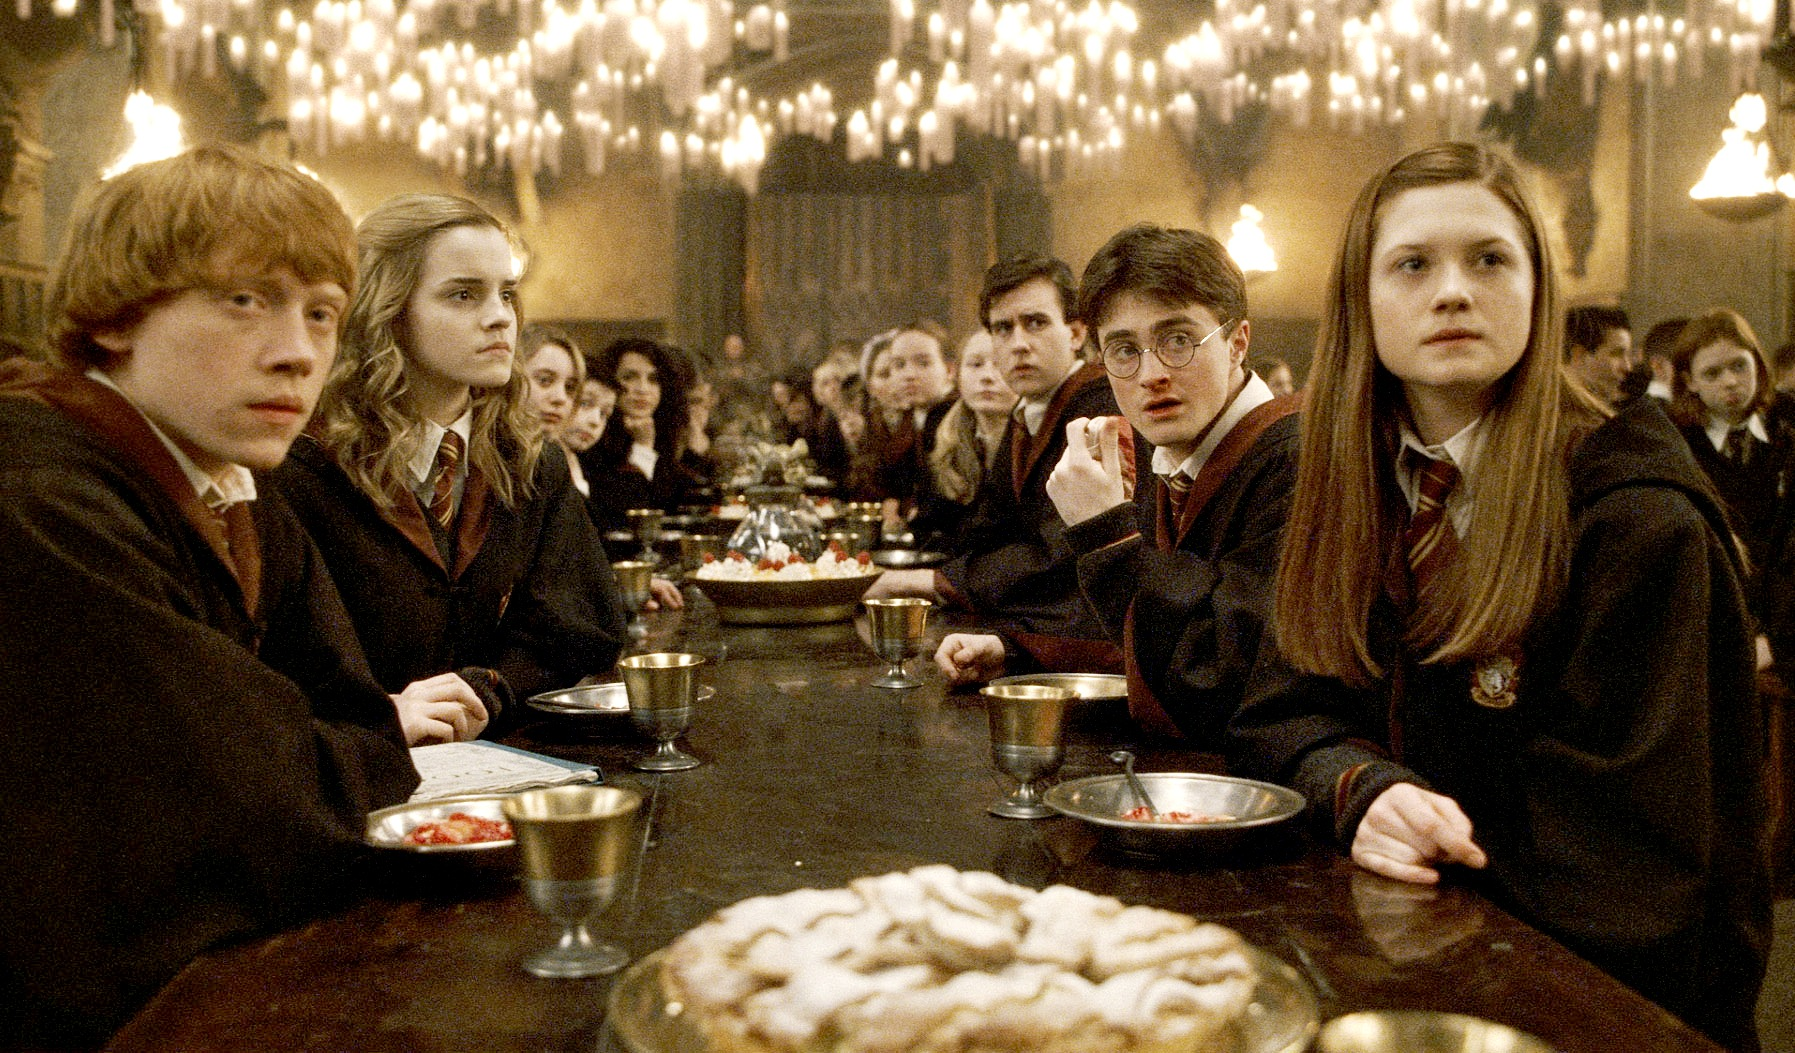 El gran comedor de harry potter bossa for Comedor harry potter